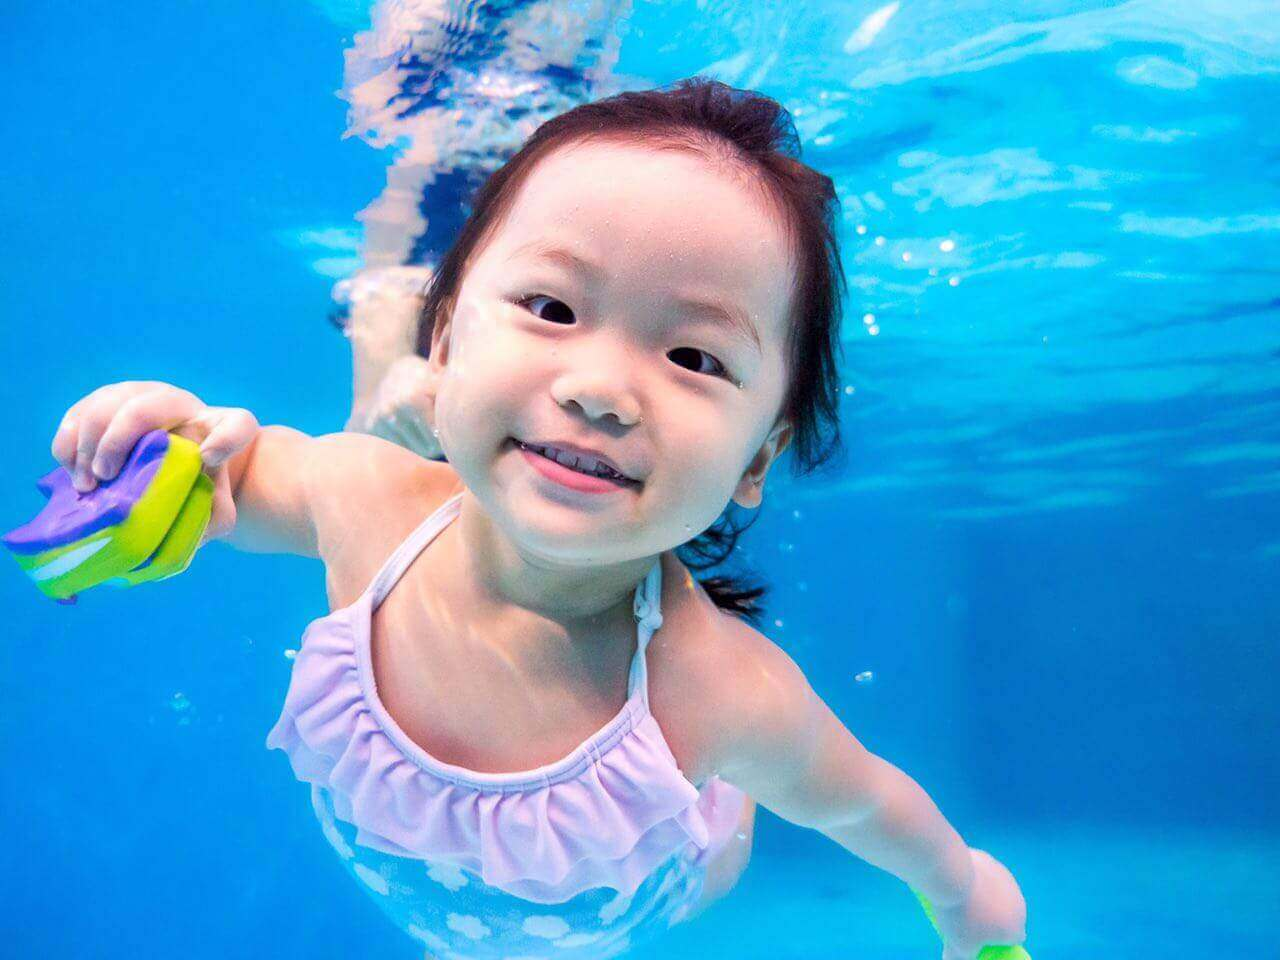 OUR SWIMMING PROGRAMMES fun and exciting swimming lessons for as little as 6 months young infants to adults and seniors. Also available at various locations - Westway (Indoors), SandBank (Sheltered), HomeTeamNS Sembawang and ActiveSG Swimming Complexes at .